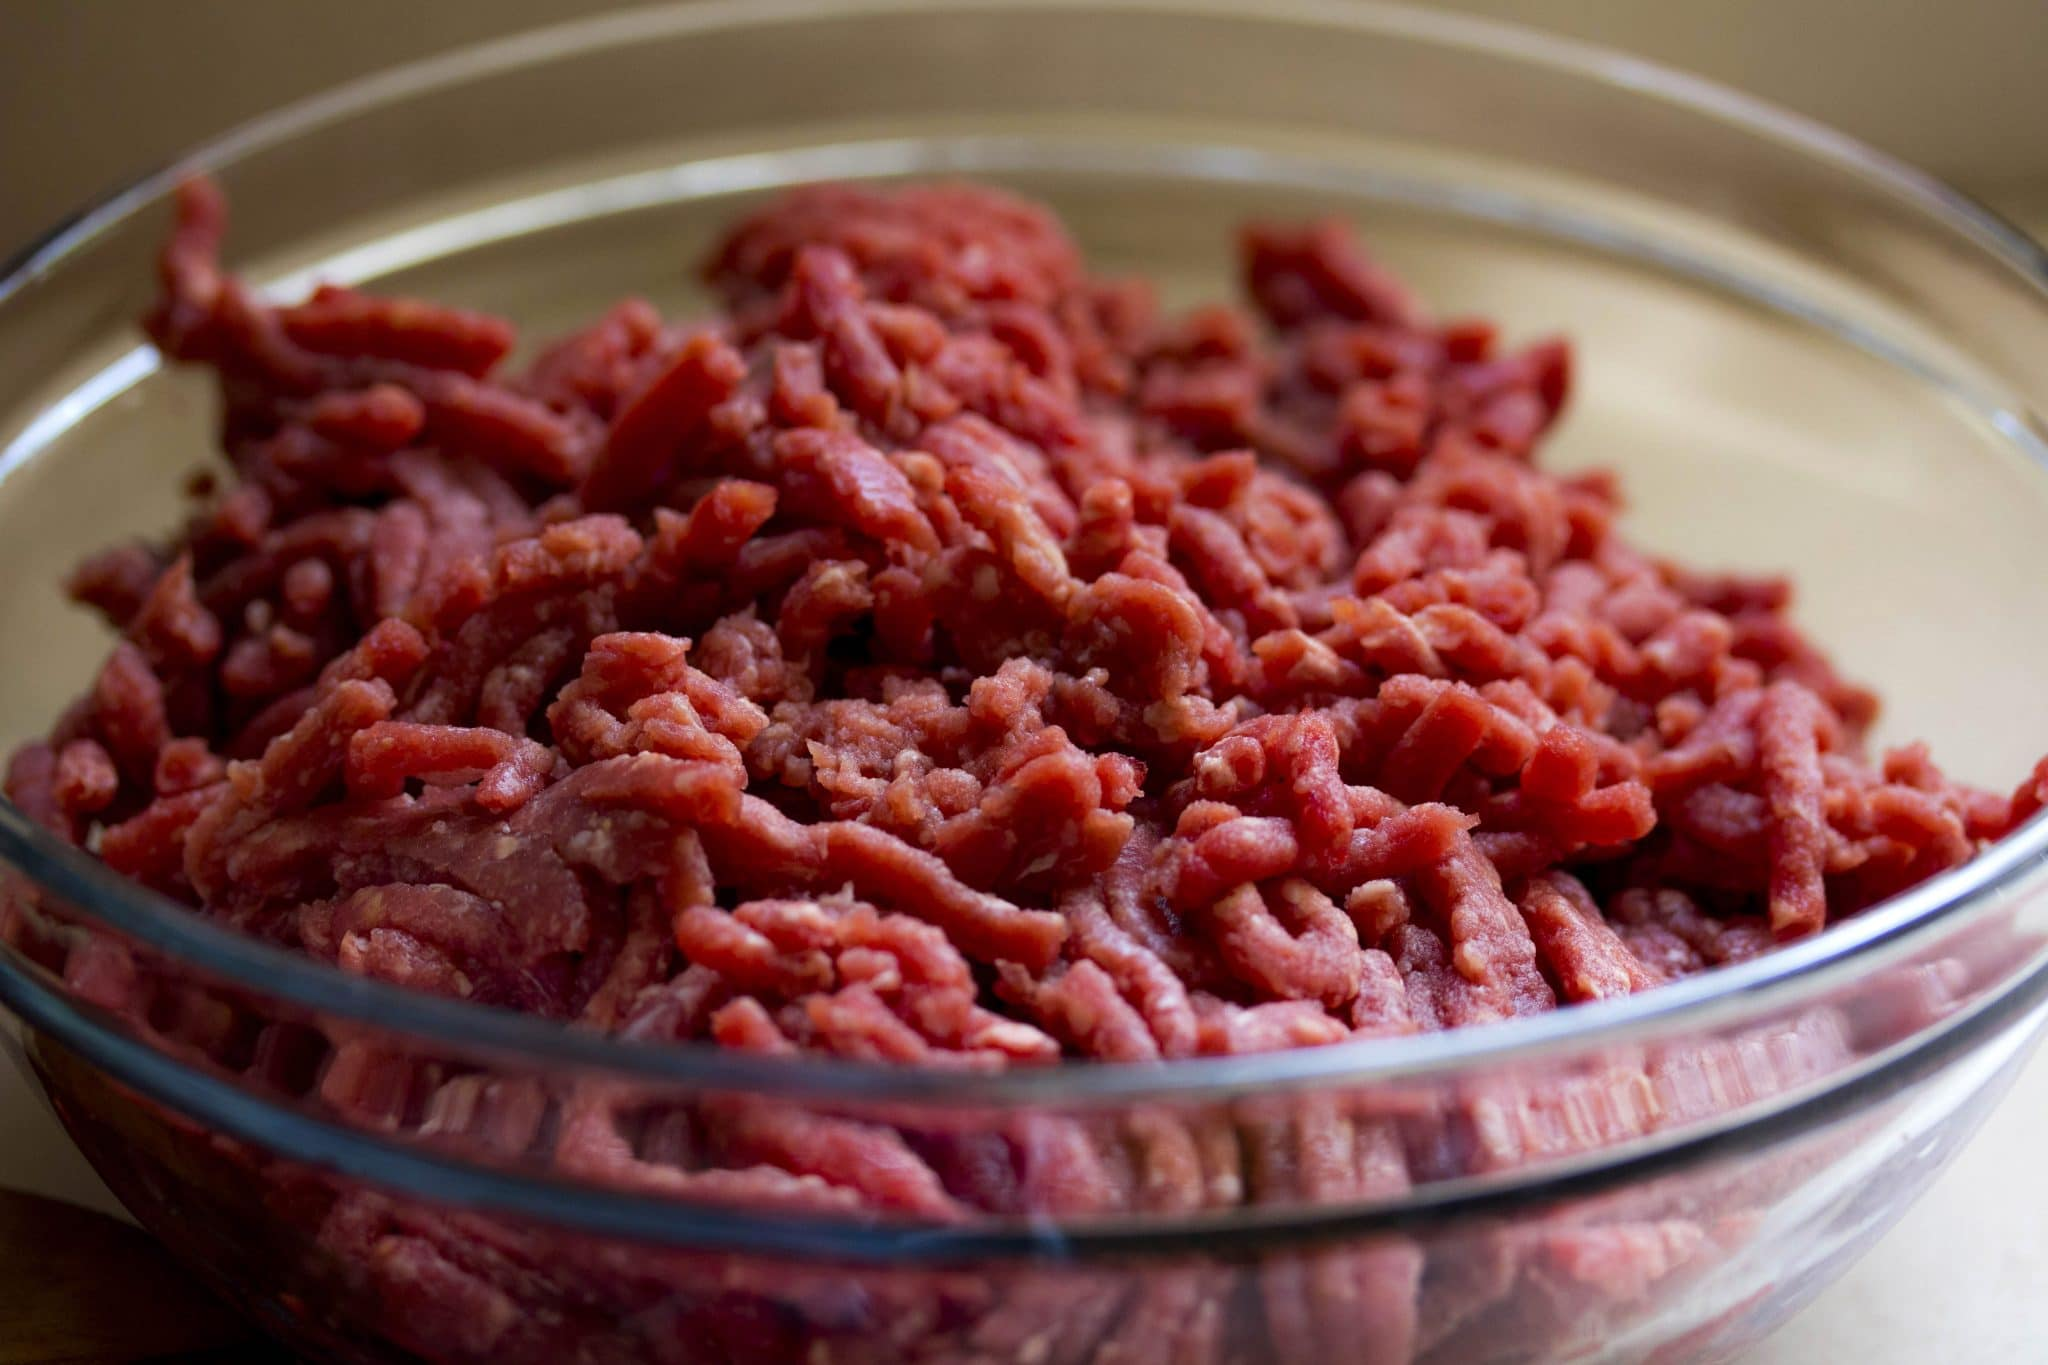 how to cook ground meat, cooking ground meat